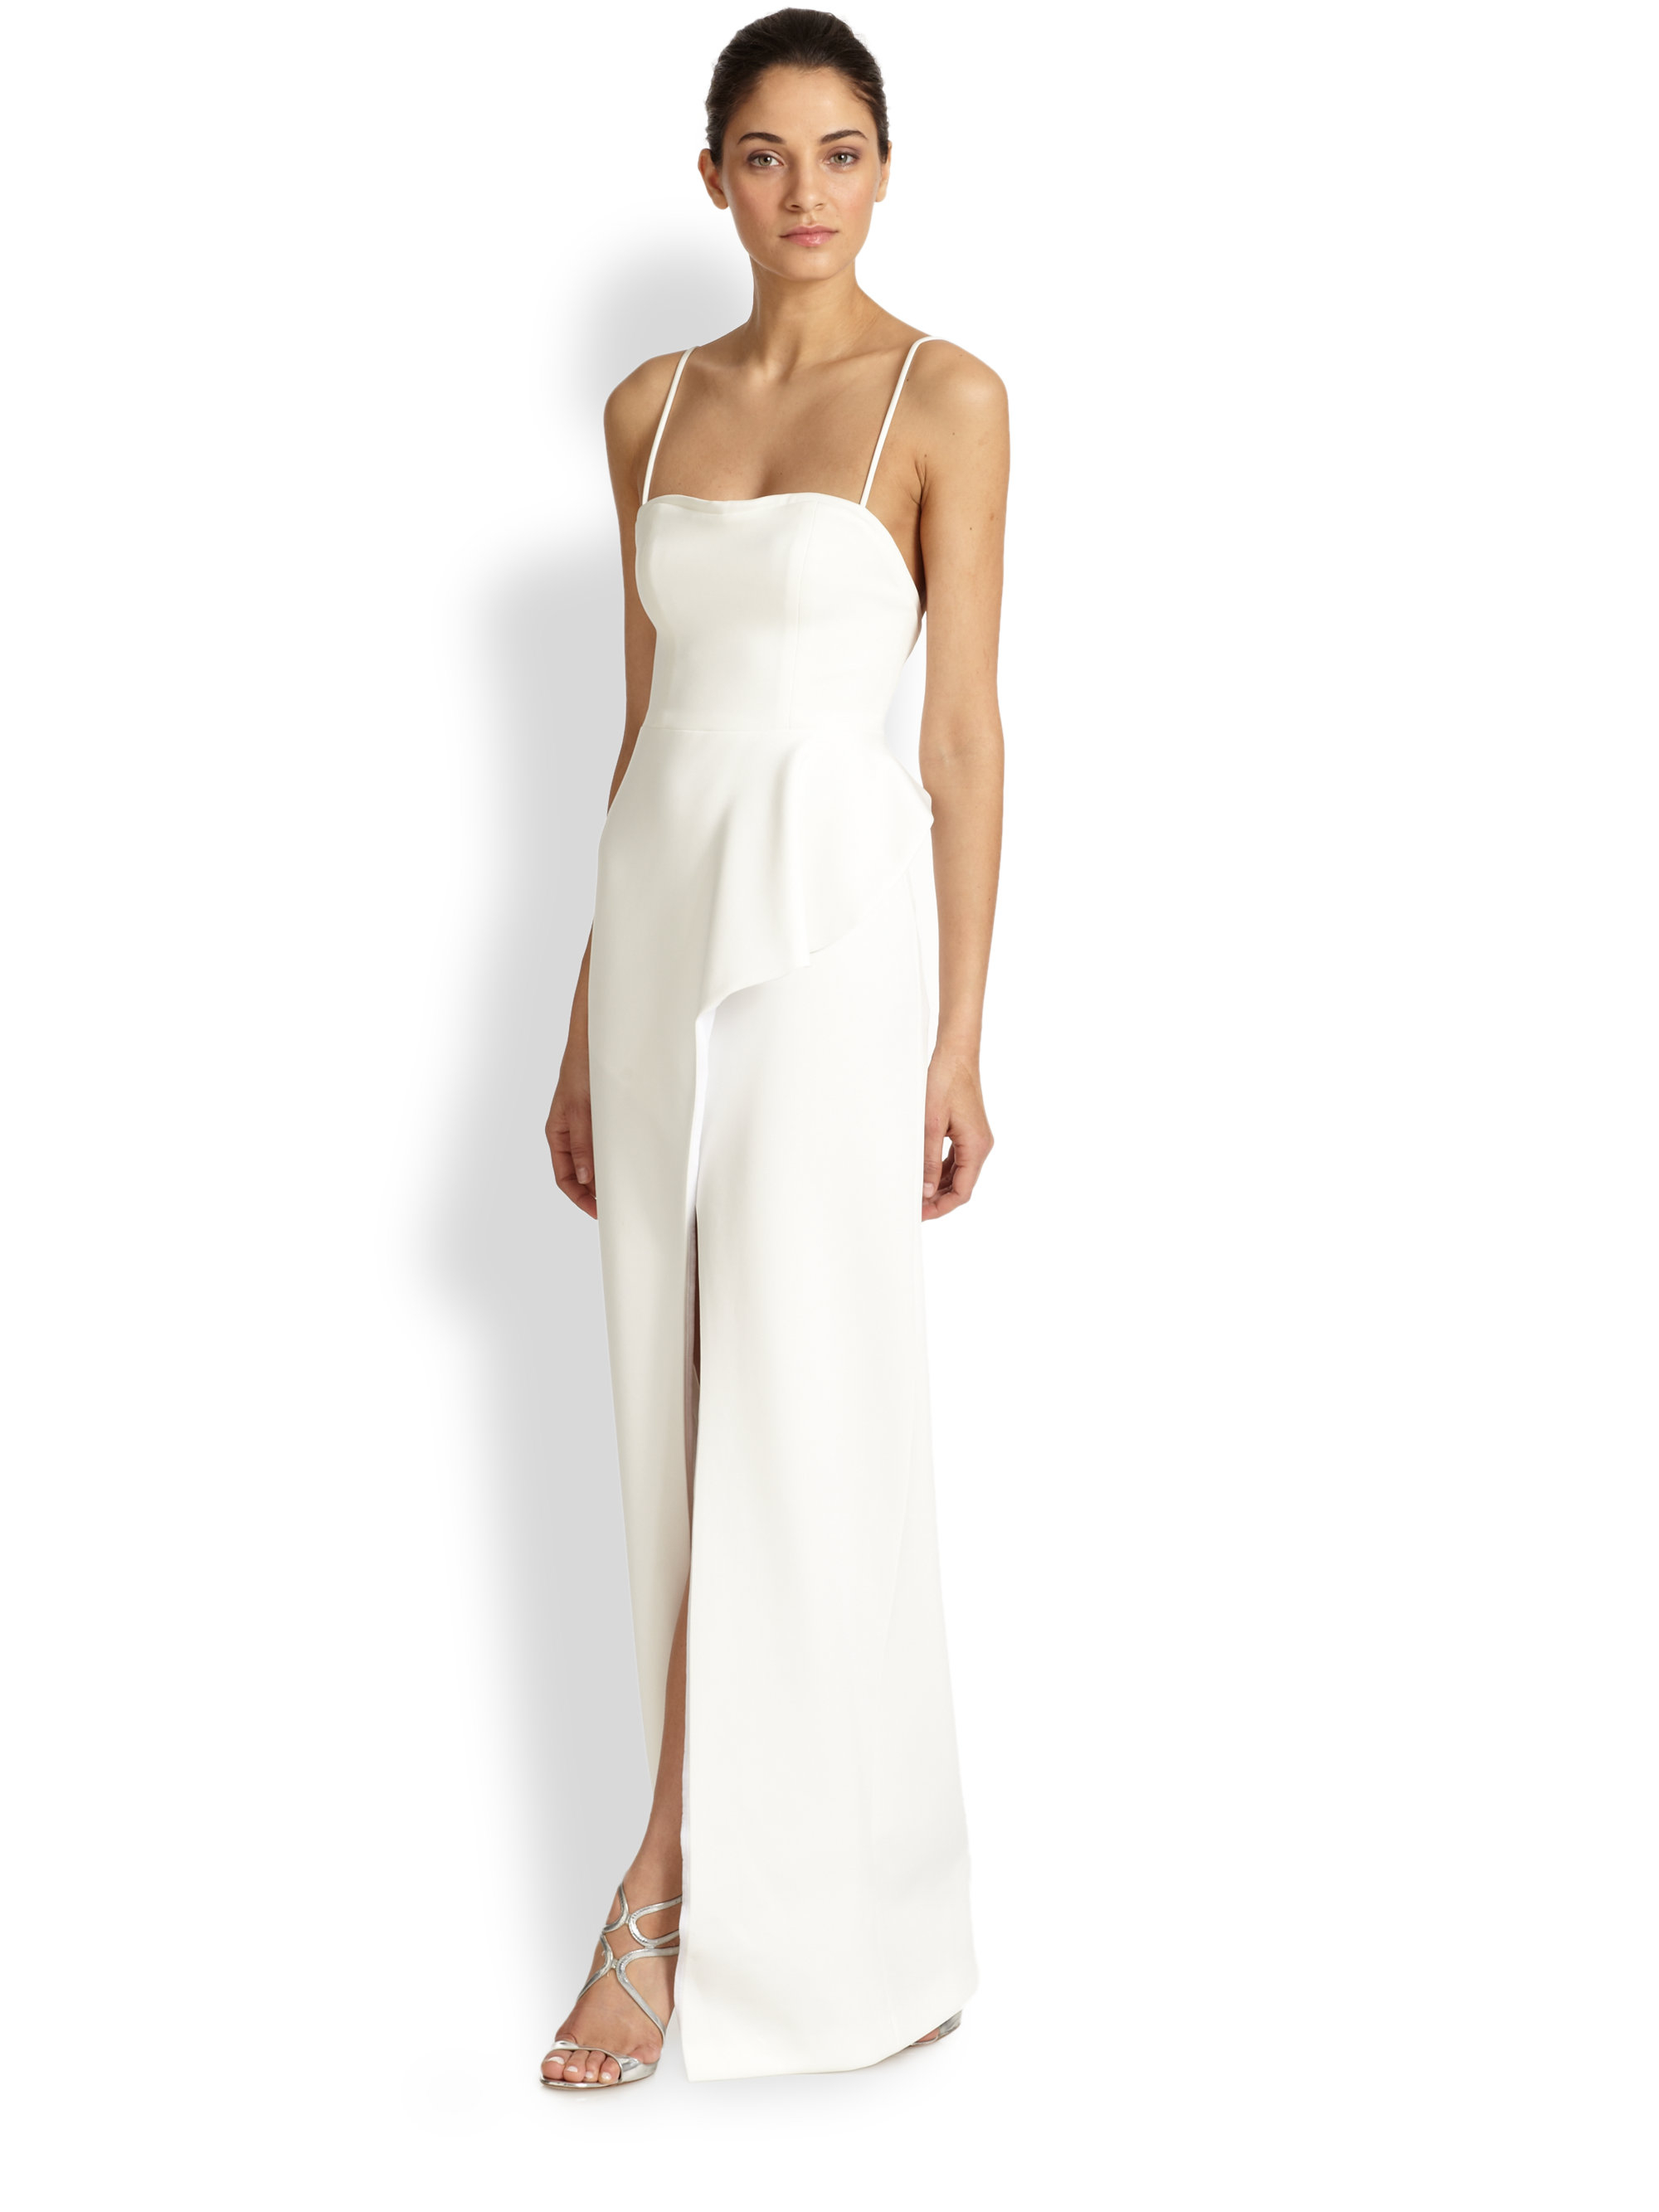 Lyst - Black Halo Eminence Gown in White